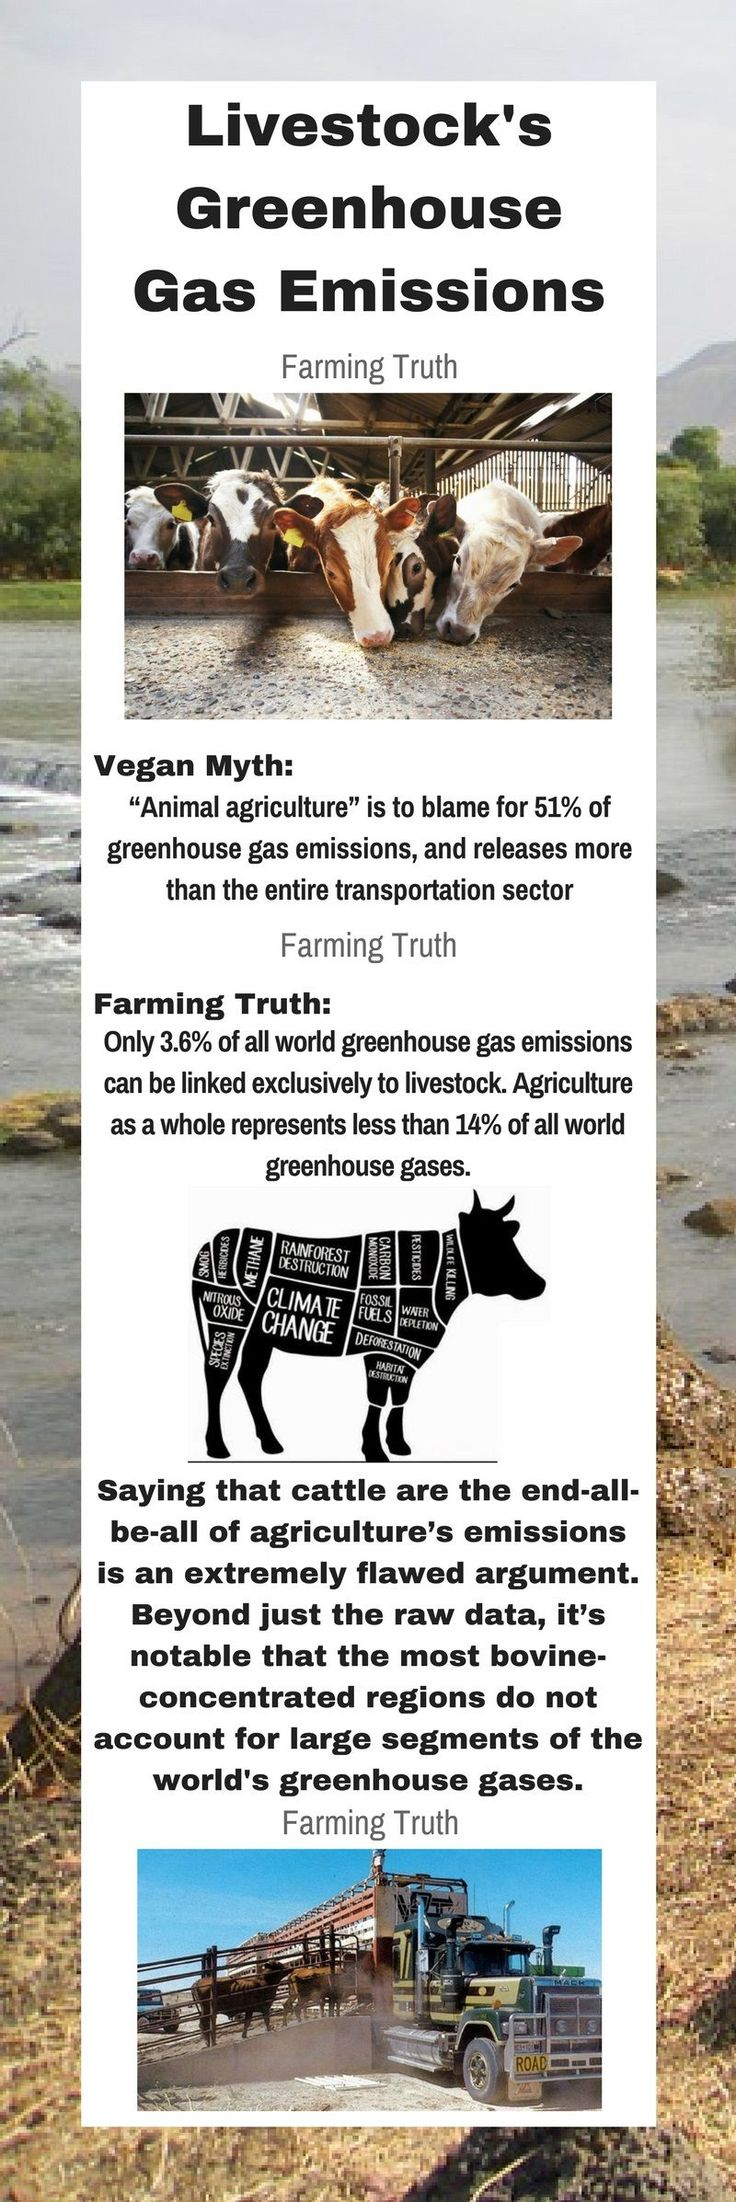 "Cowspiracy popularized the myth that ""animal agriculture"" causes 51% of world greenhouse gas emissions giving environmentalists quite a scare. Good news- that couldn't be further from the truth!"